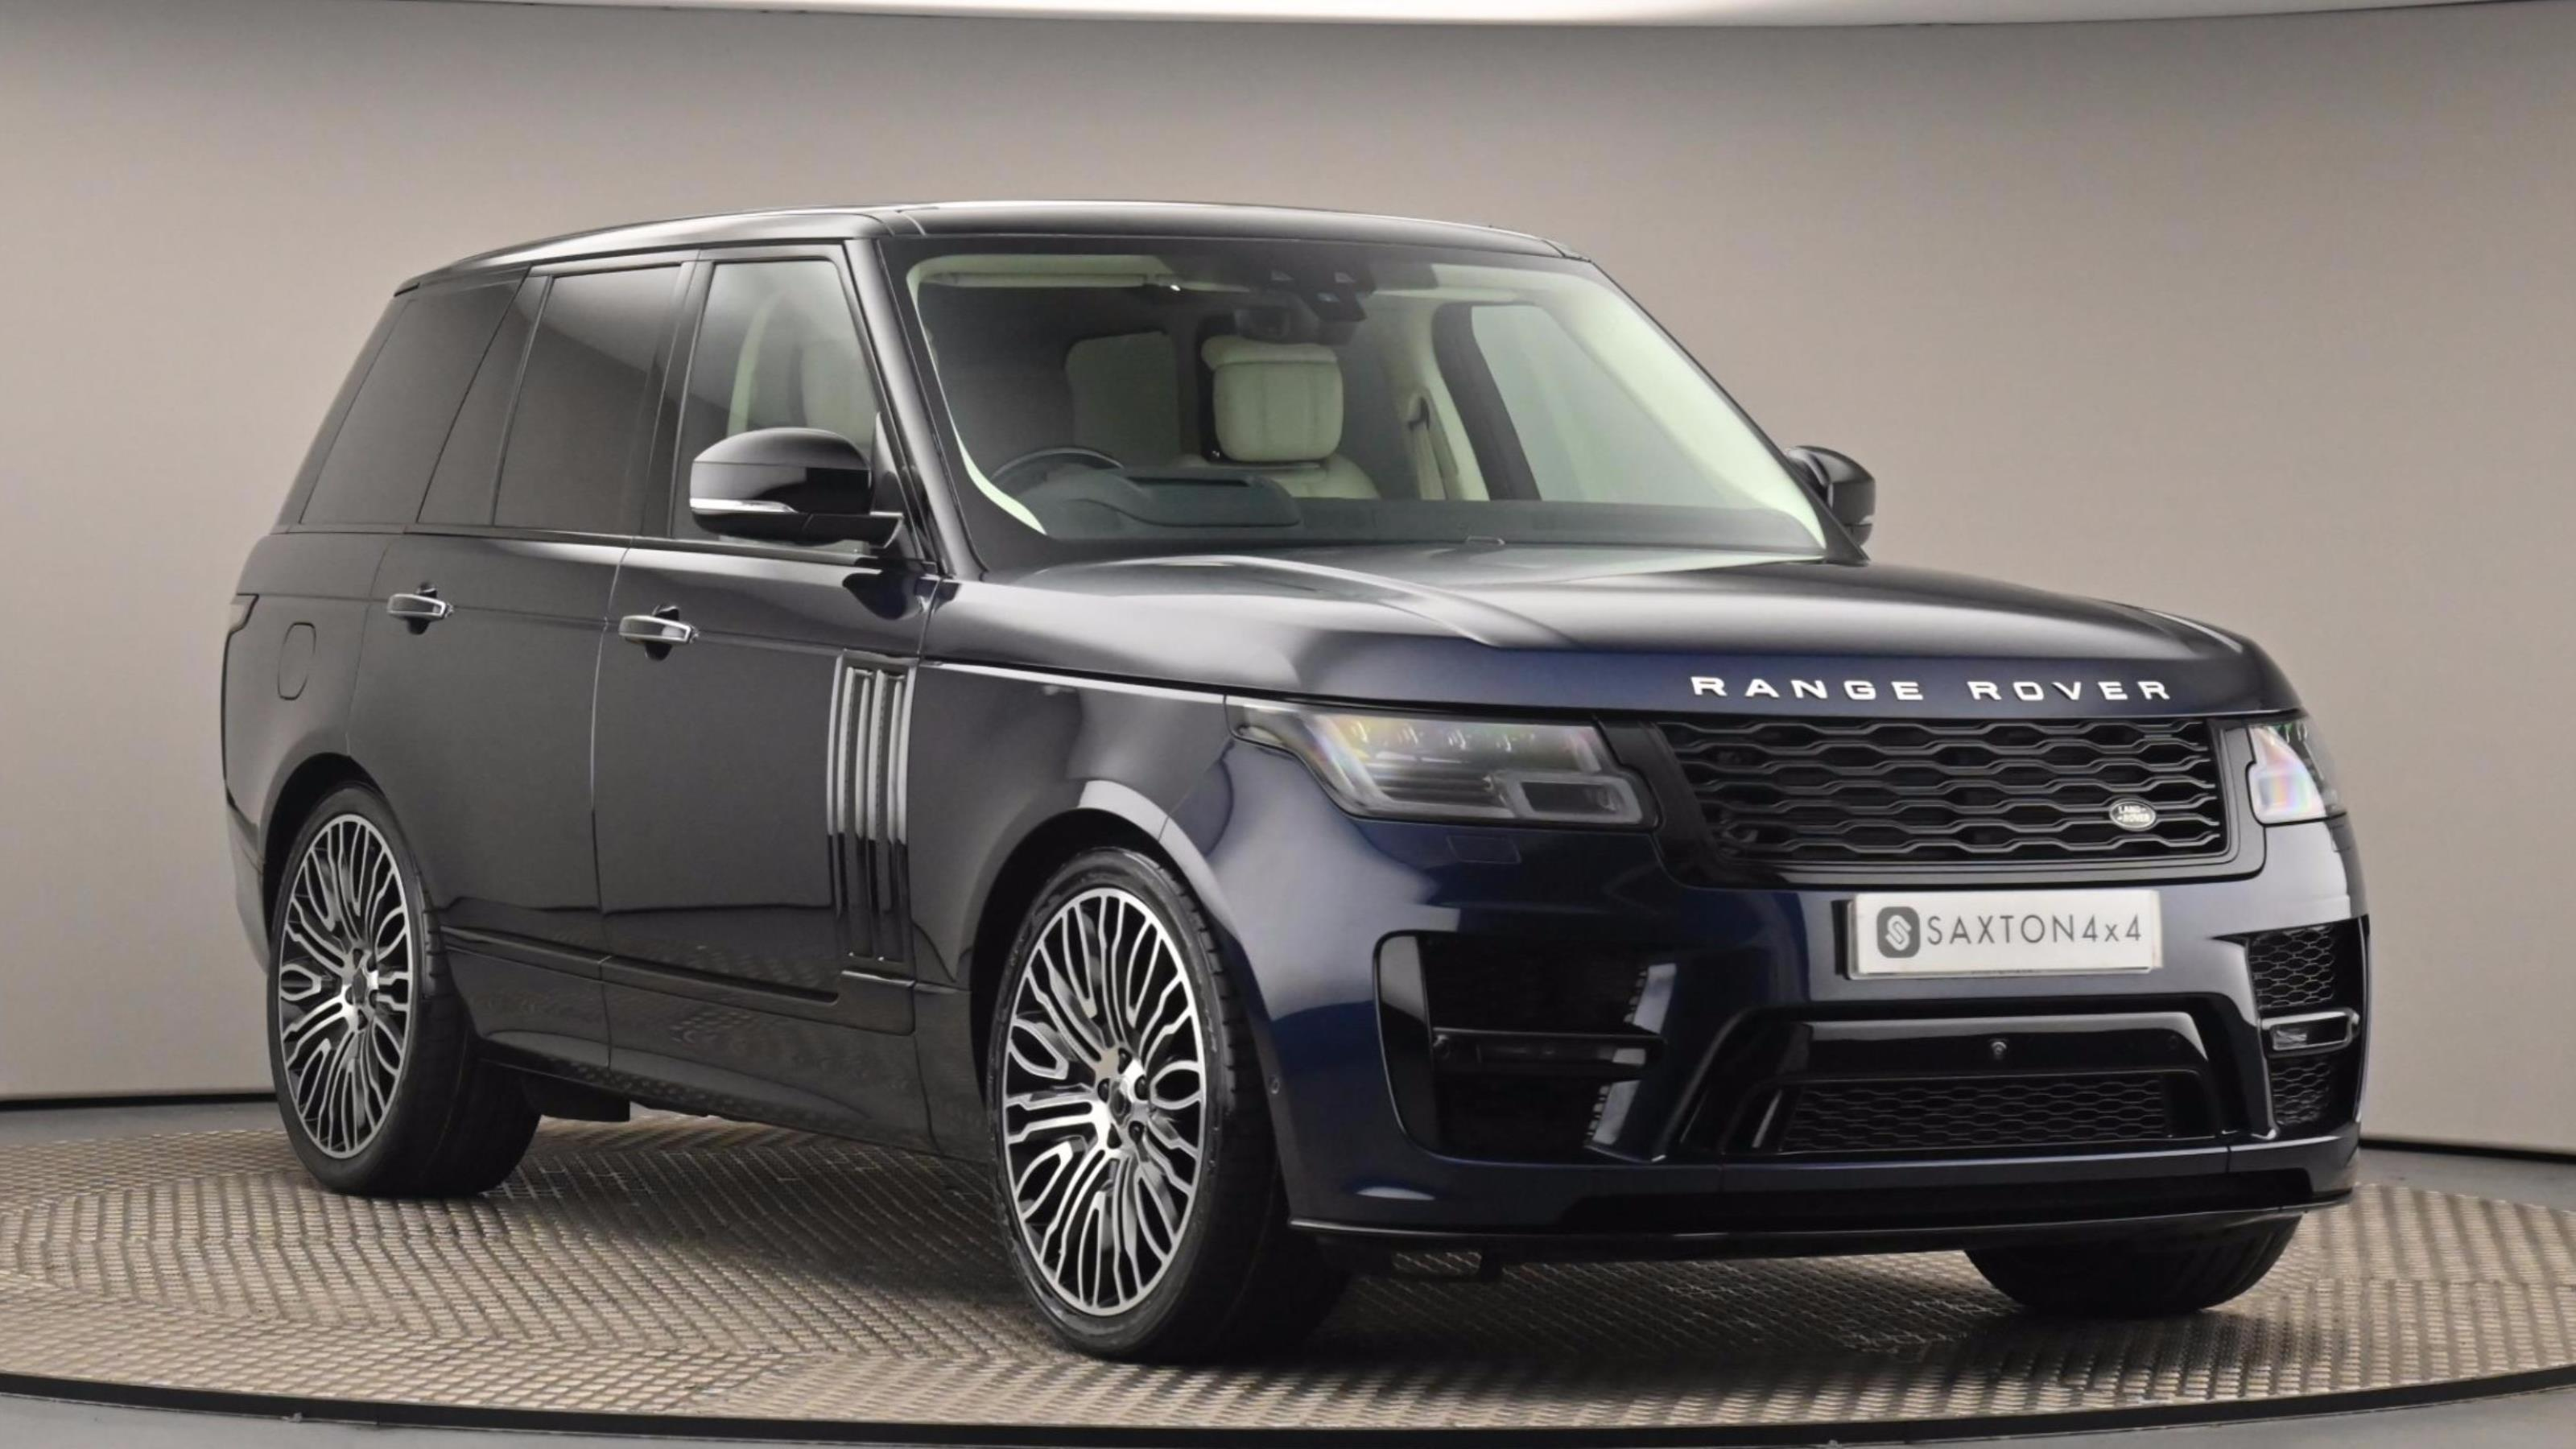 Used 2019 Land Rover RANGE ROVER 5.0 V8 S/C Autobiography 4dr Auto at Saxton4x4